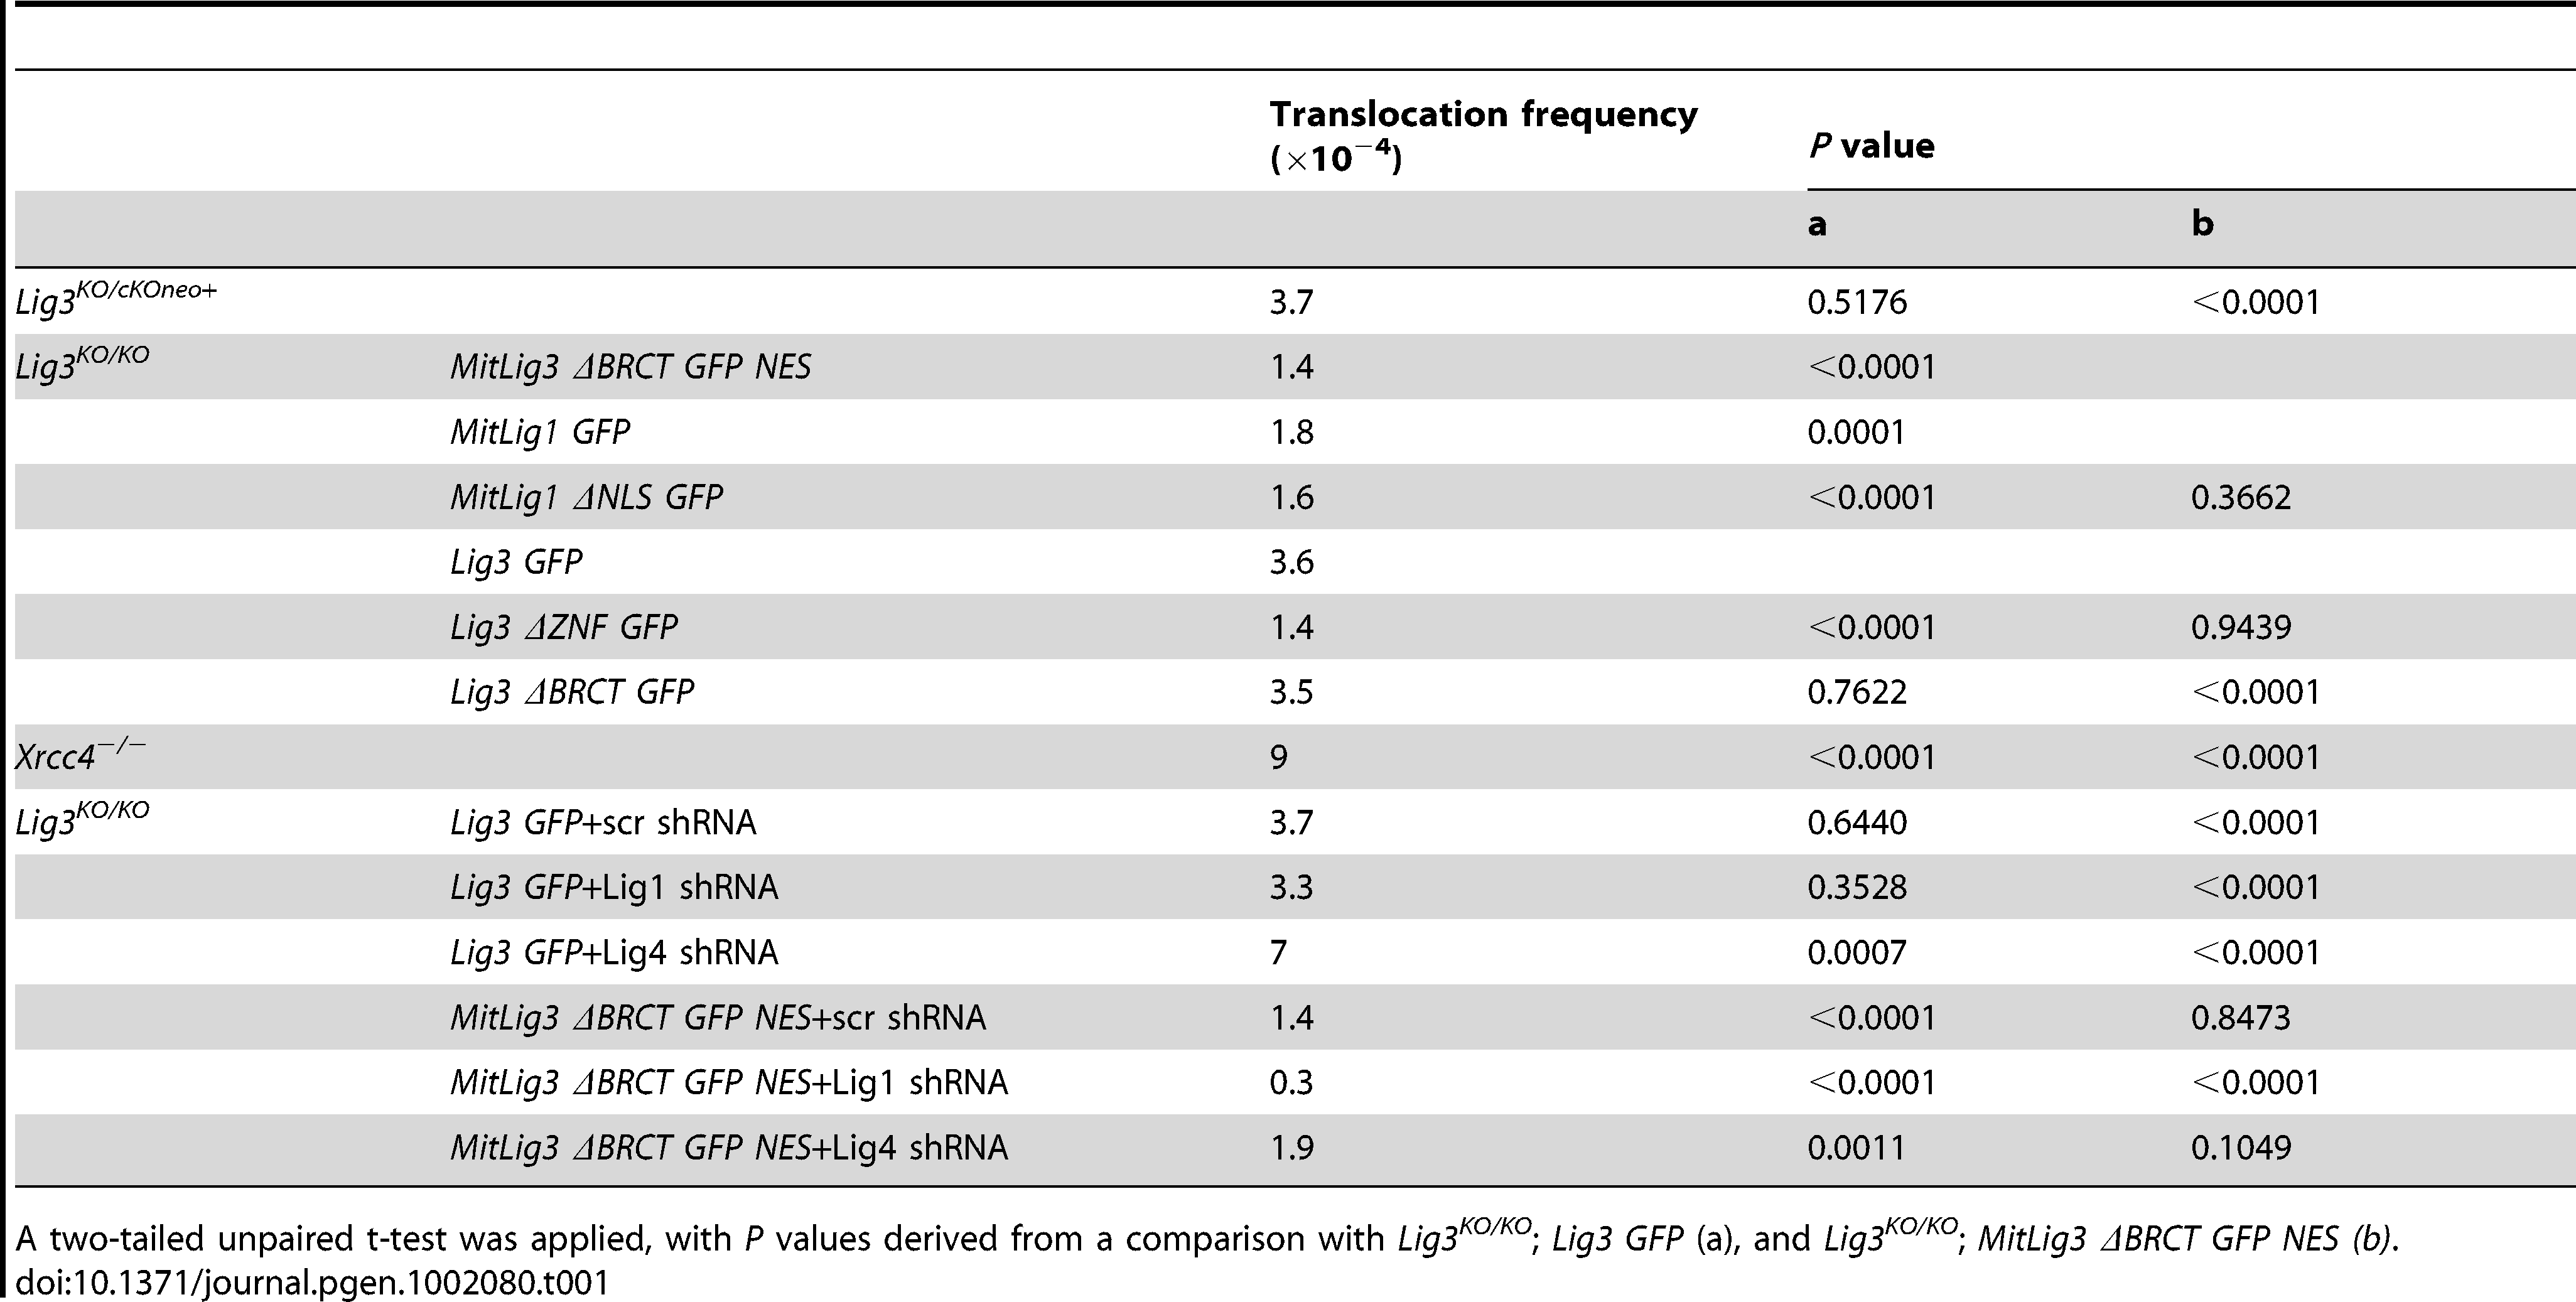 Translocation frequencies for various cell lines tested.